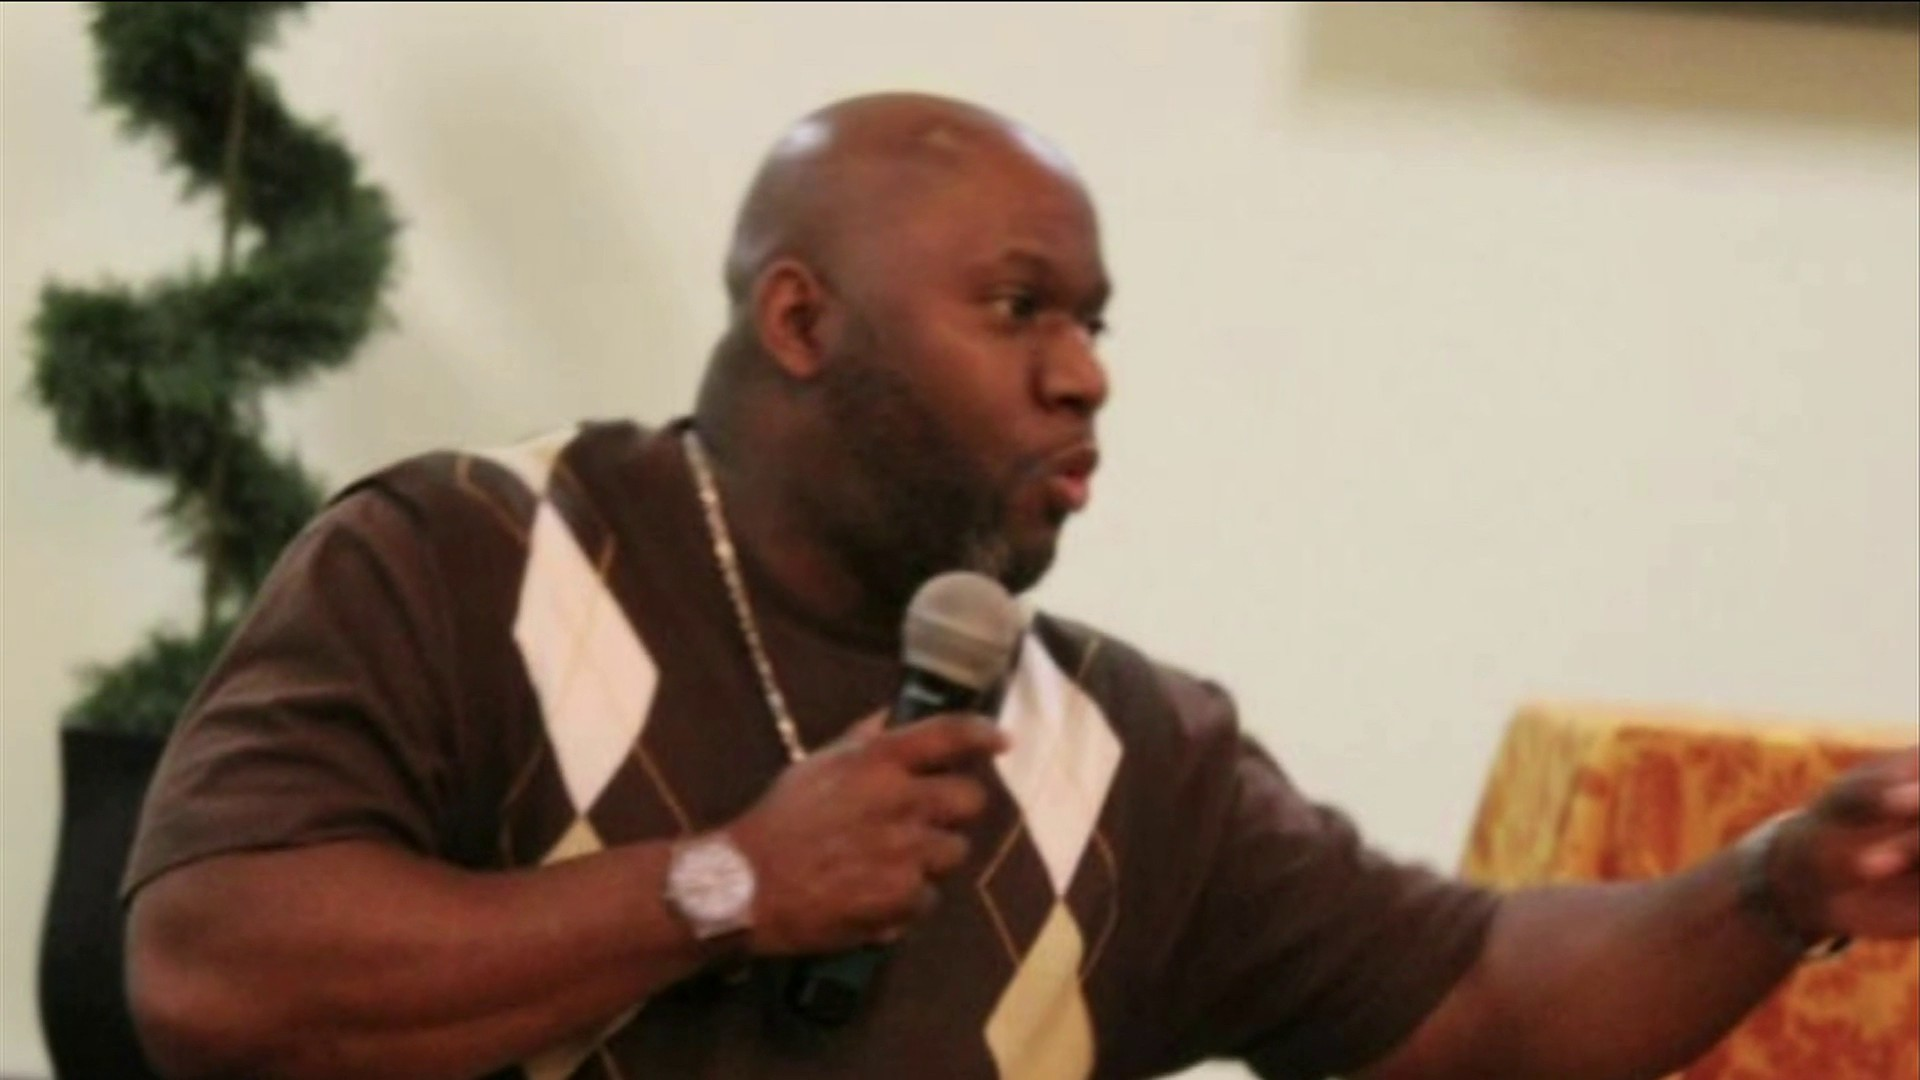 Florida Church Urges Suspect Who Killed Pastor in Hit-and-Run to 'Turn Yourself In'